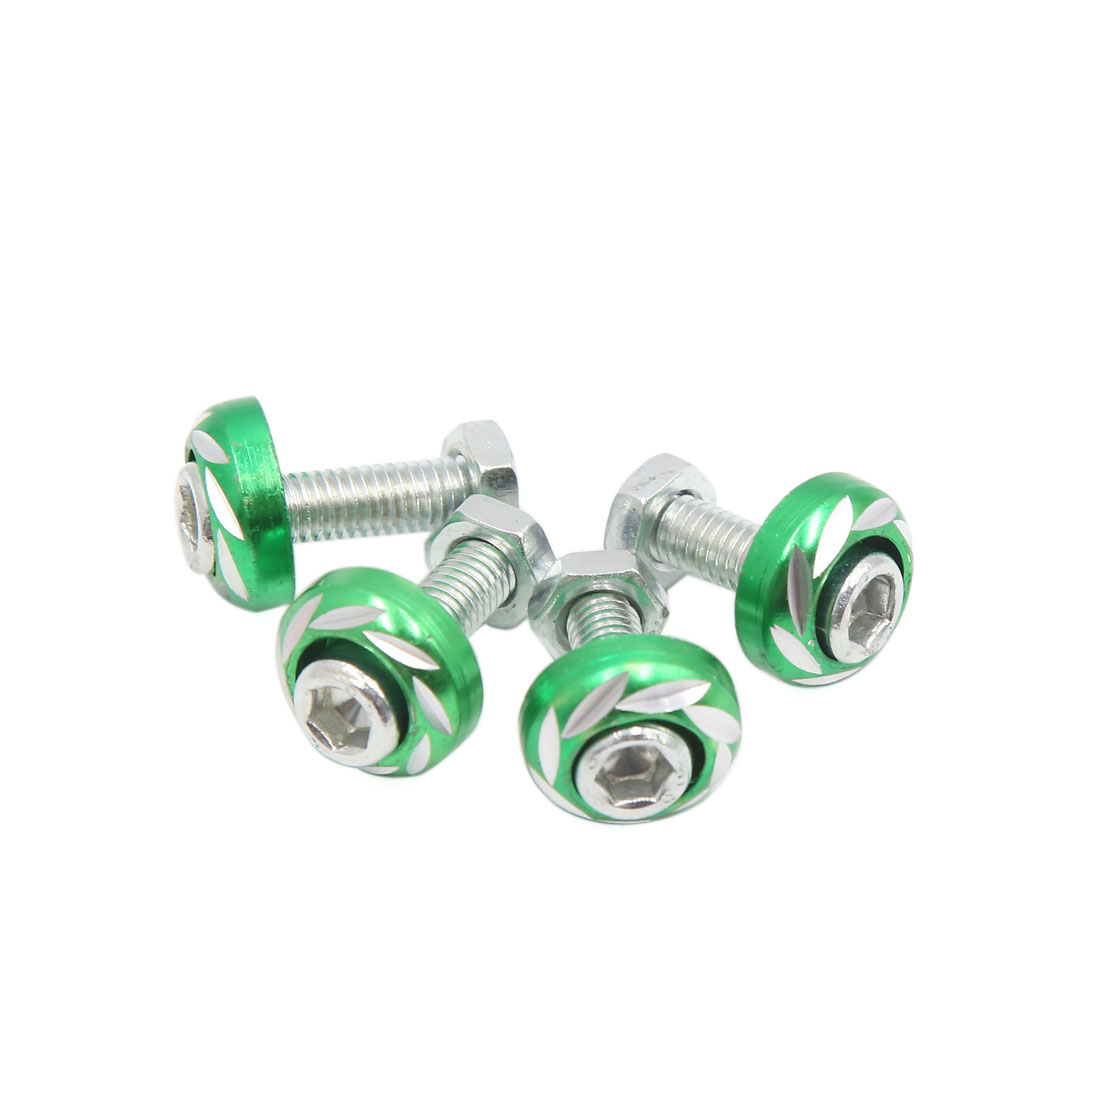 4pcs Green 6mm Thread Diameter Motorcycle License Plate Frame Carving Screws Bolts Caps